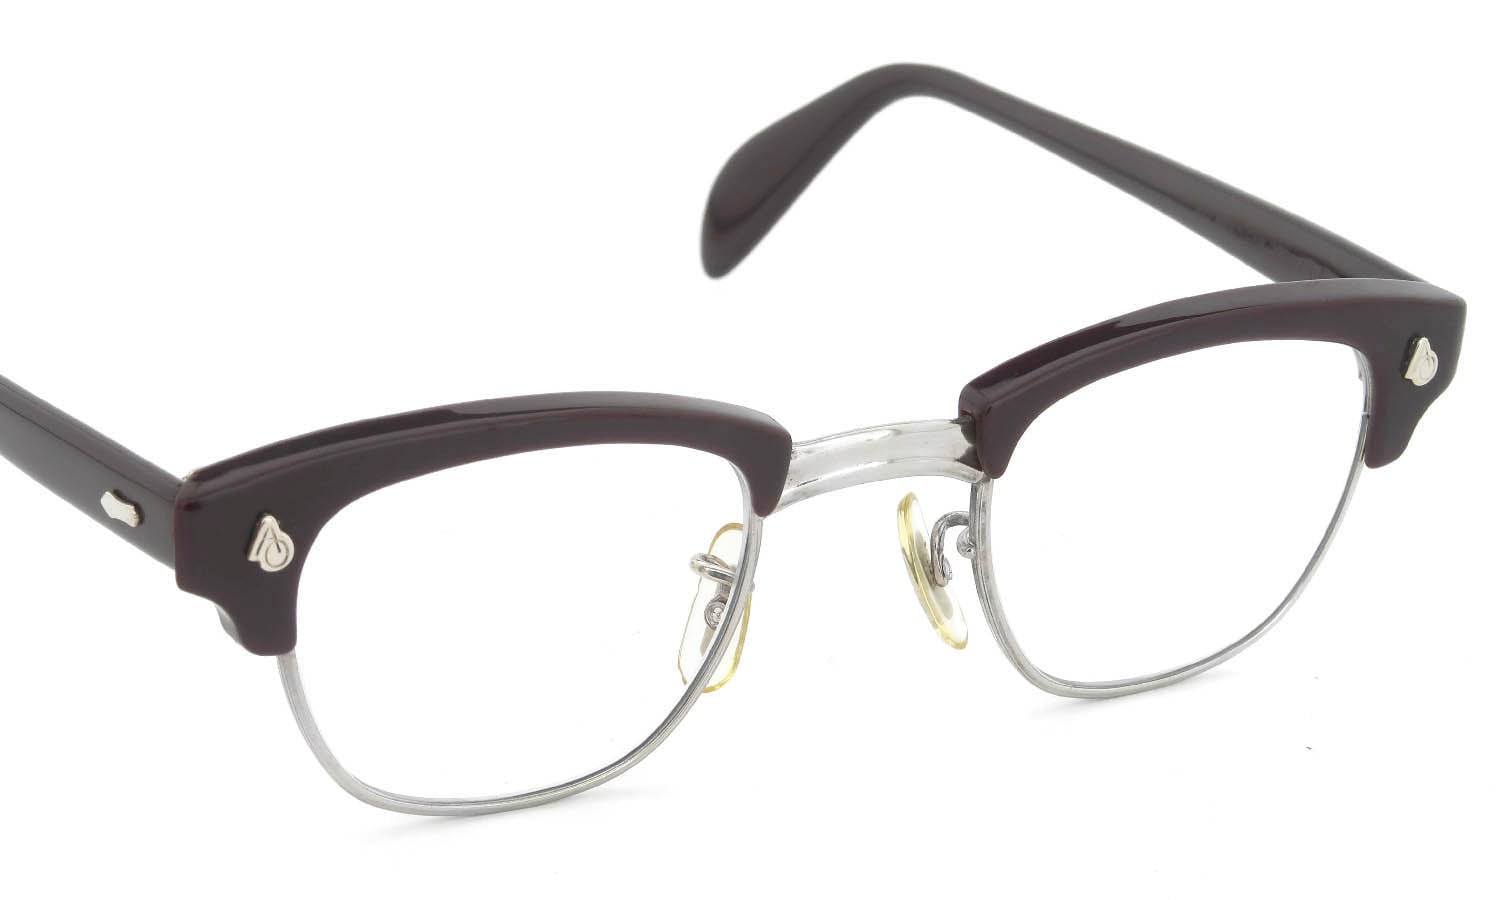 American Optical Vintage 1960s-1980s Brow Combination AO鋲 Brown/Silver 44-24